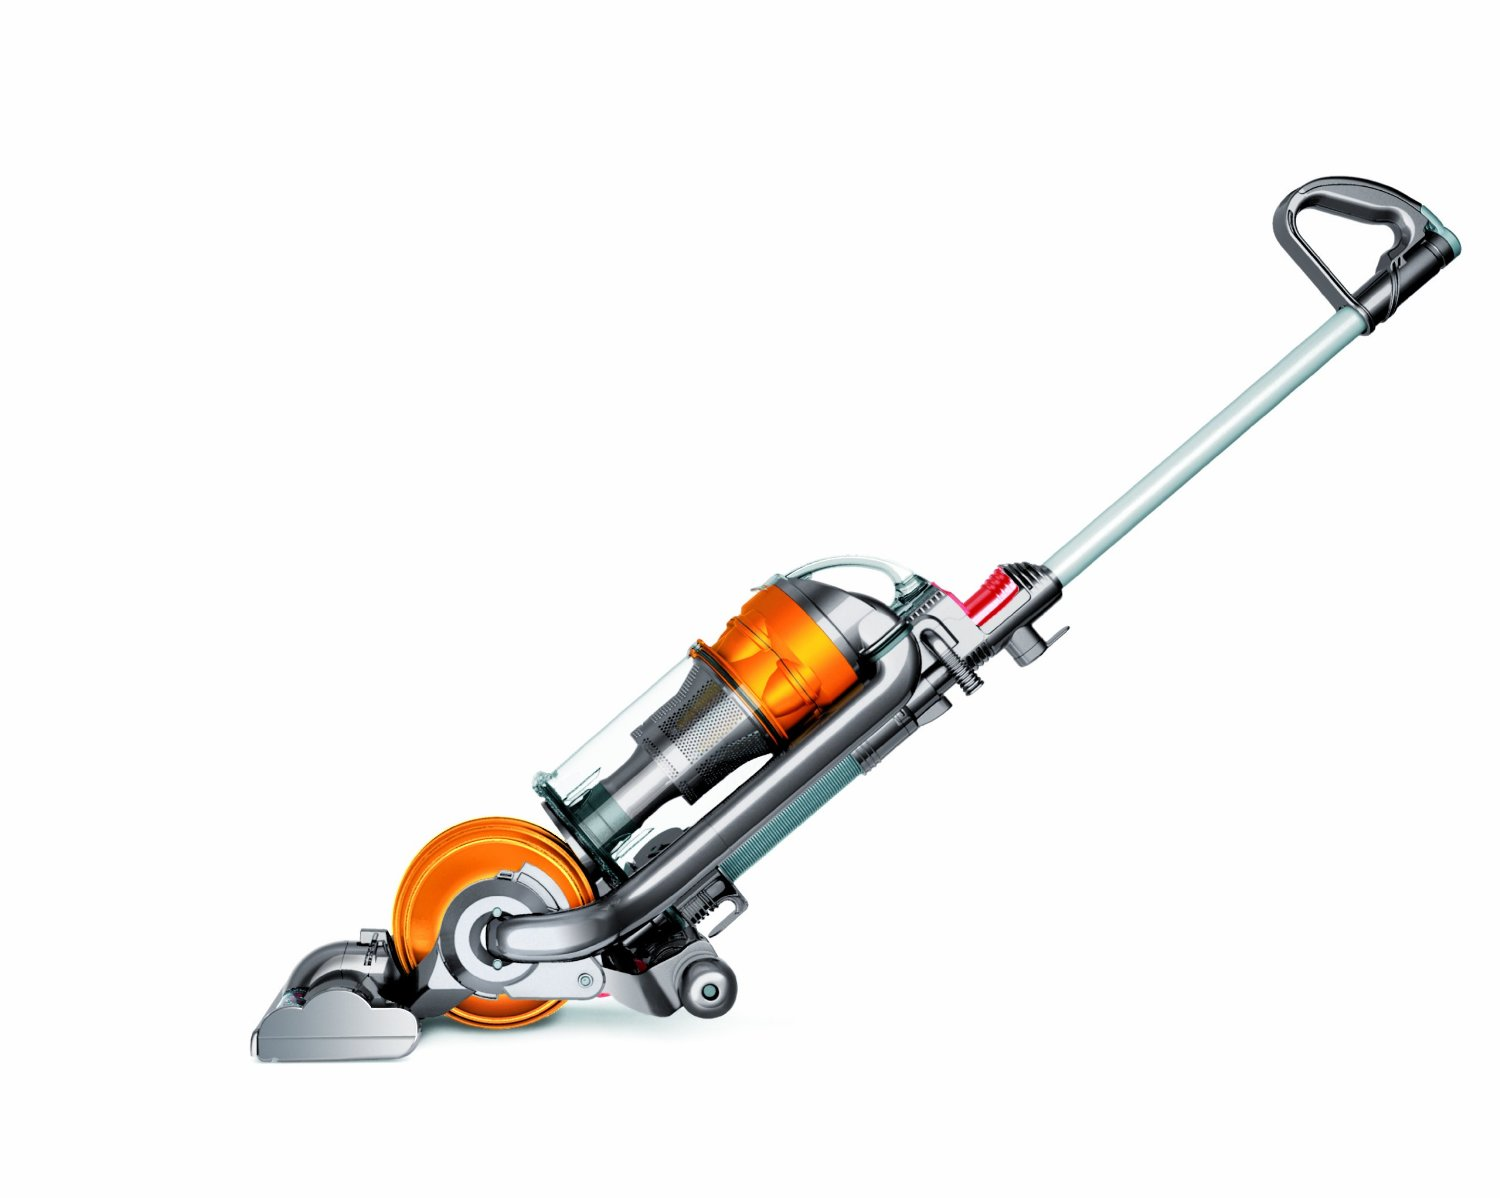 dyson dc24 upright vacuum cleaner review. Black Bedroom Furniture Sets. Home Design Ideas